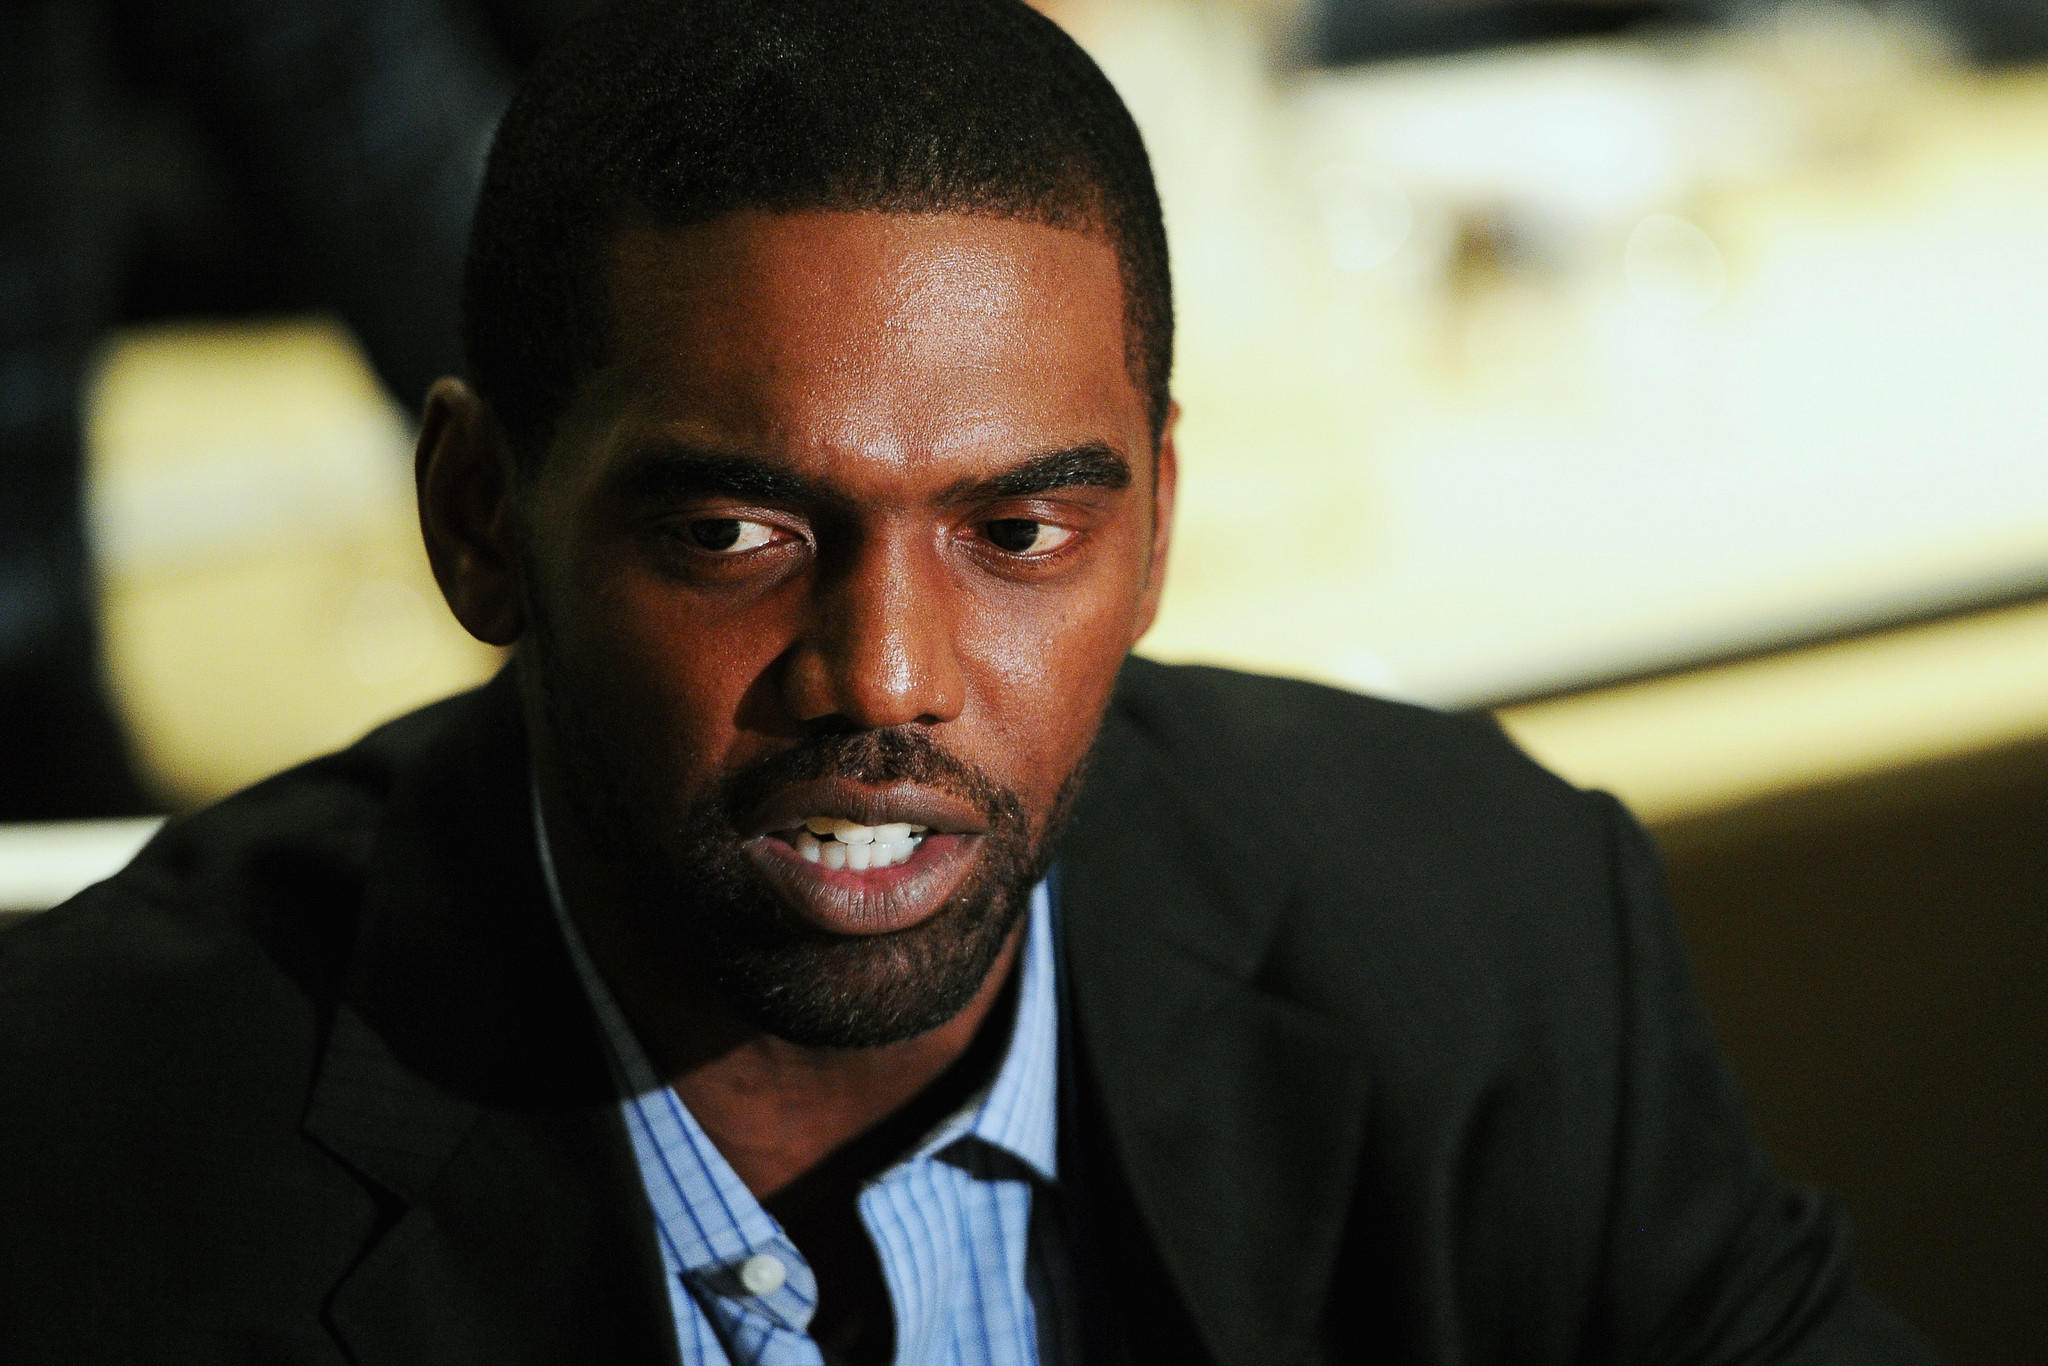 Randy Moss, former NFL player and current NFL analyst for FOX Sports, answers questions from the press during the FOX Sports media availablility in the Empire East Ballroom, at Super Bowl XLVIII Media Center at the Sheraton New York Times Square on January 28, 2014 in New York City.